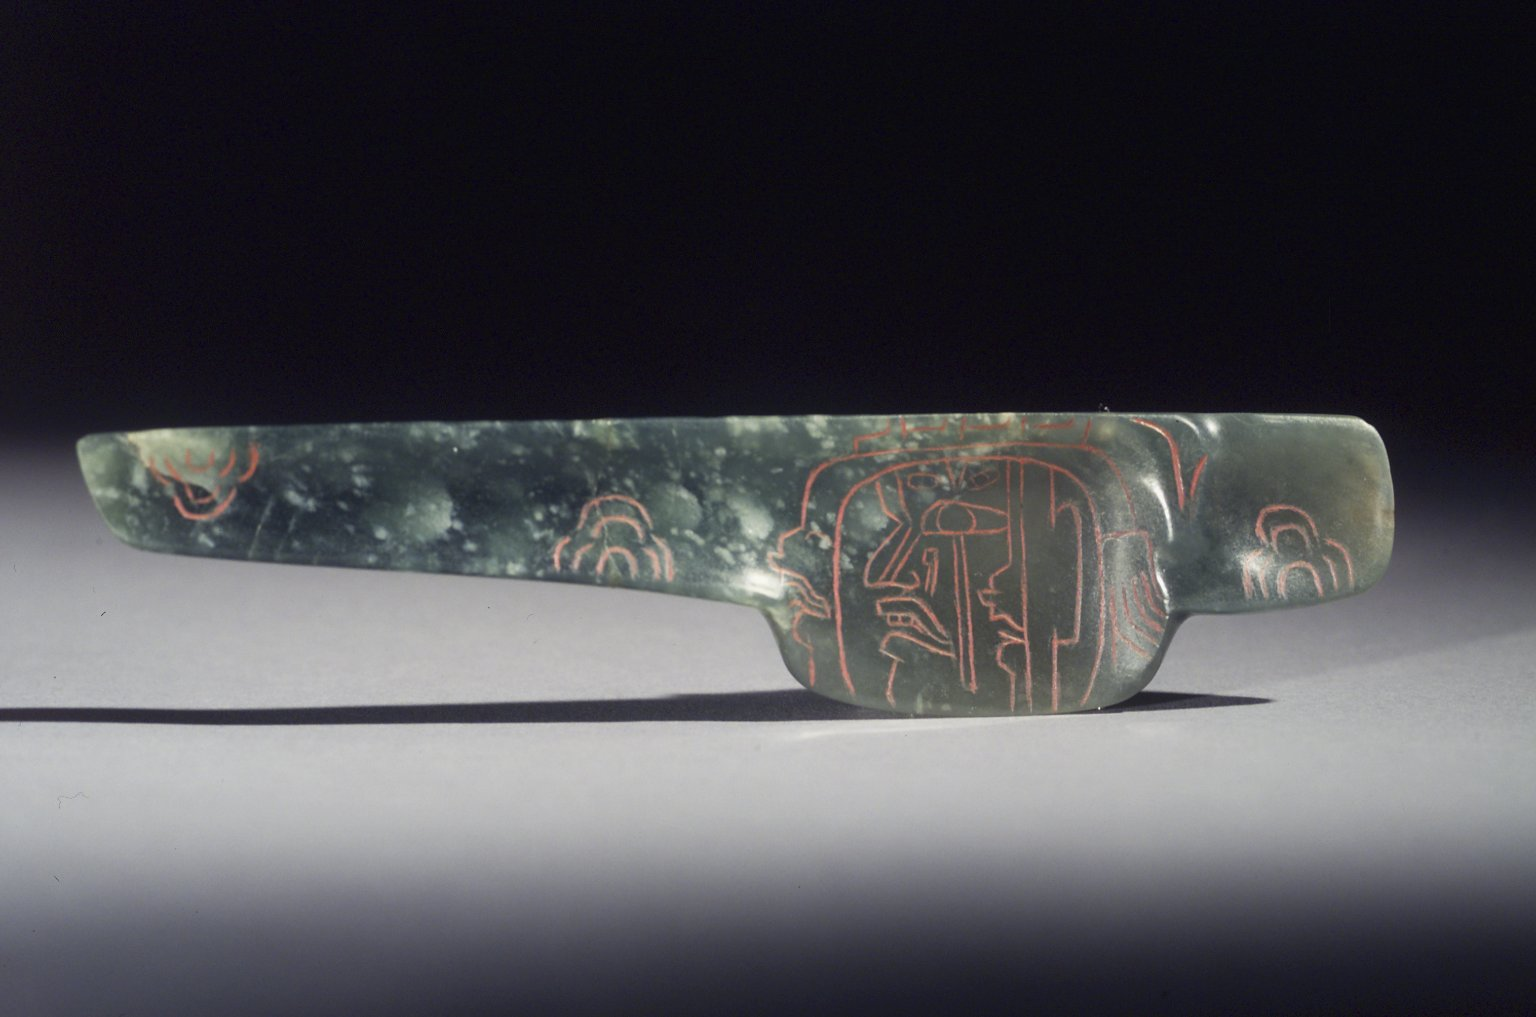 Brooklyn Museum: Spoon with Incised Designs